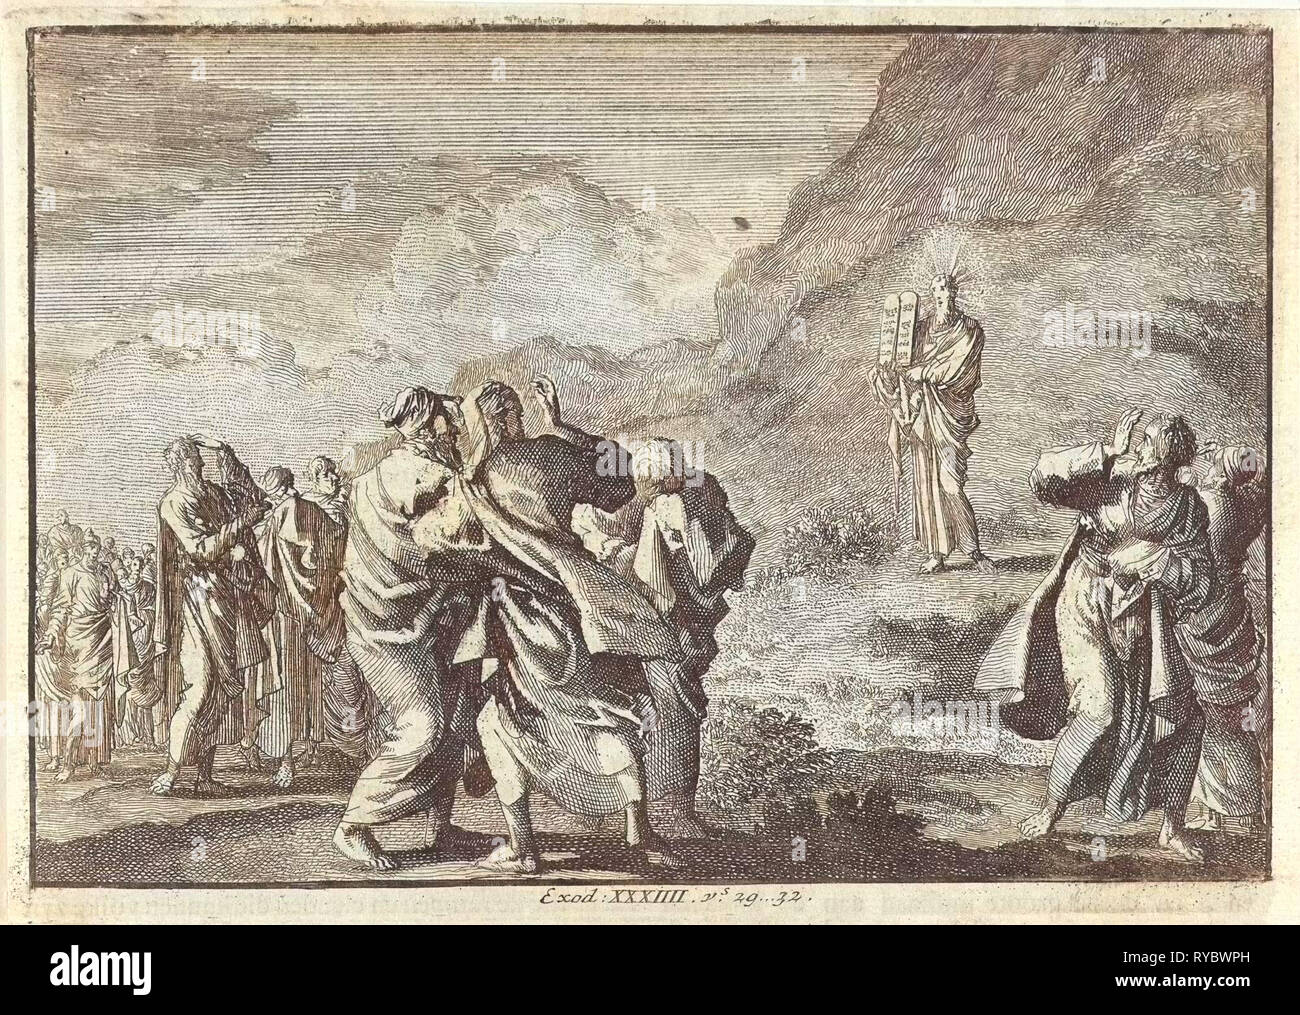 Moses received the law tables and displays them to the people, Jan Luyken, Pieter Mortier, 1703 - 1762 Stock Photo